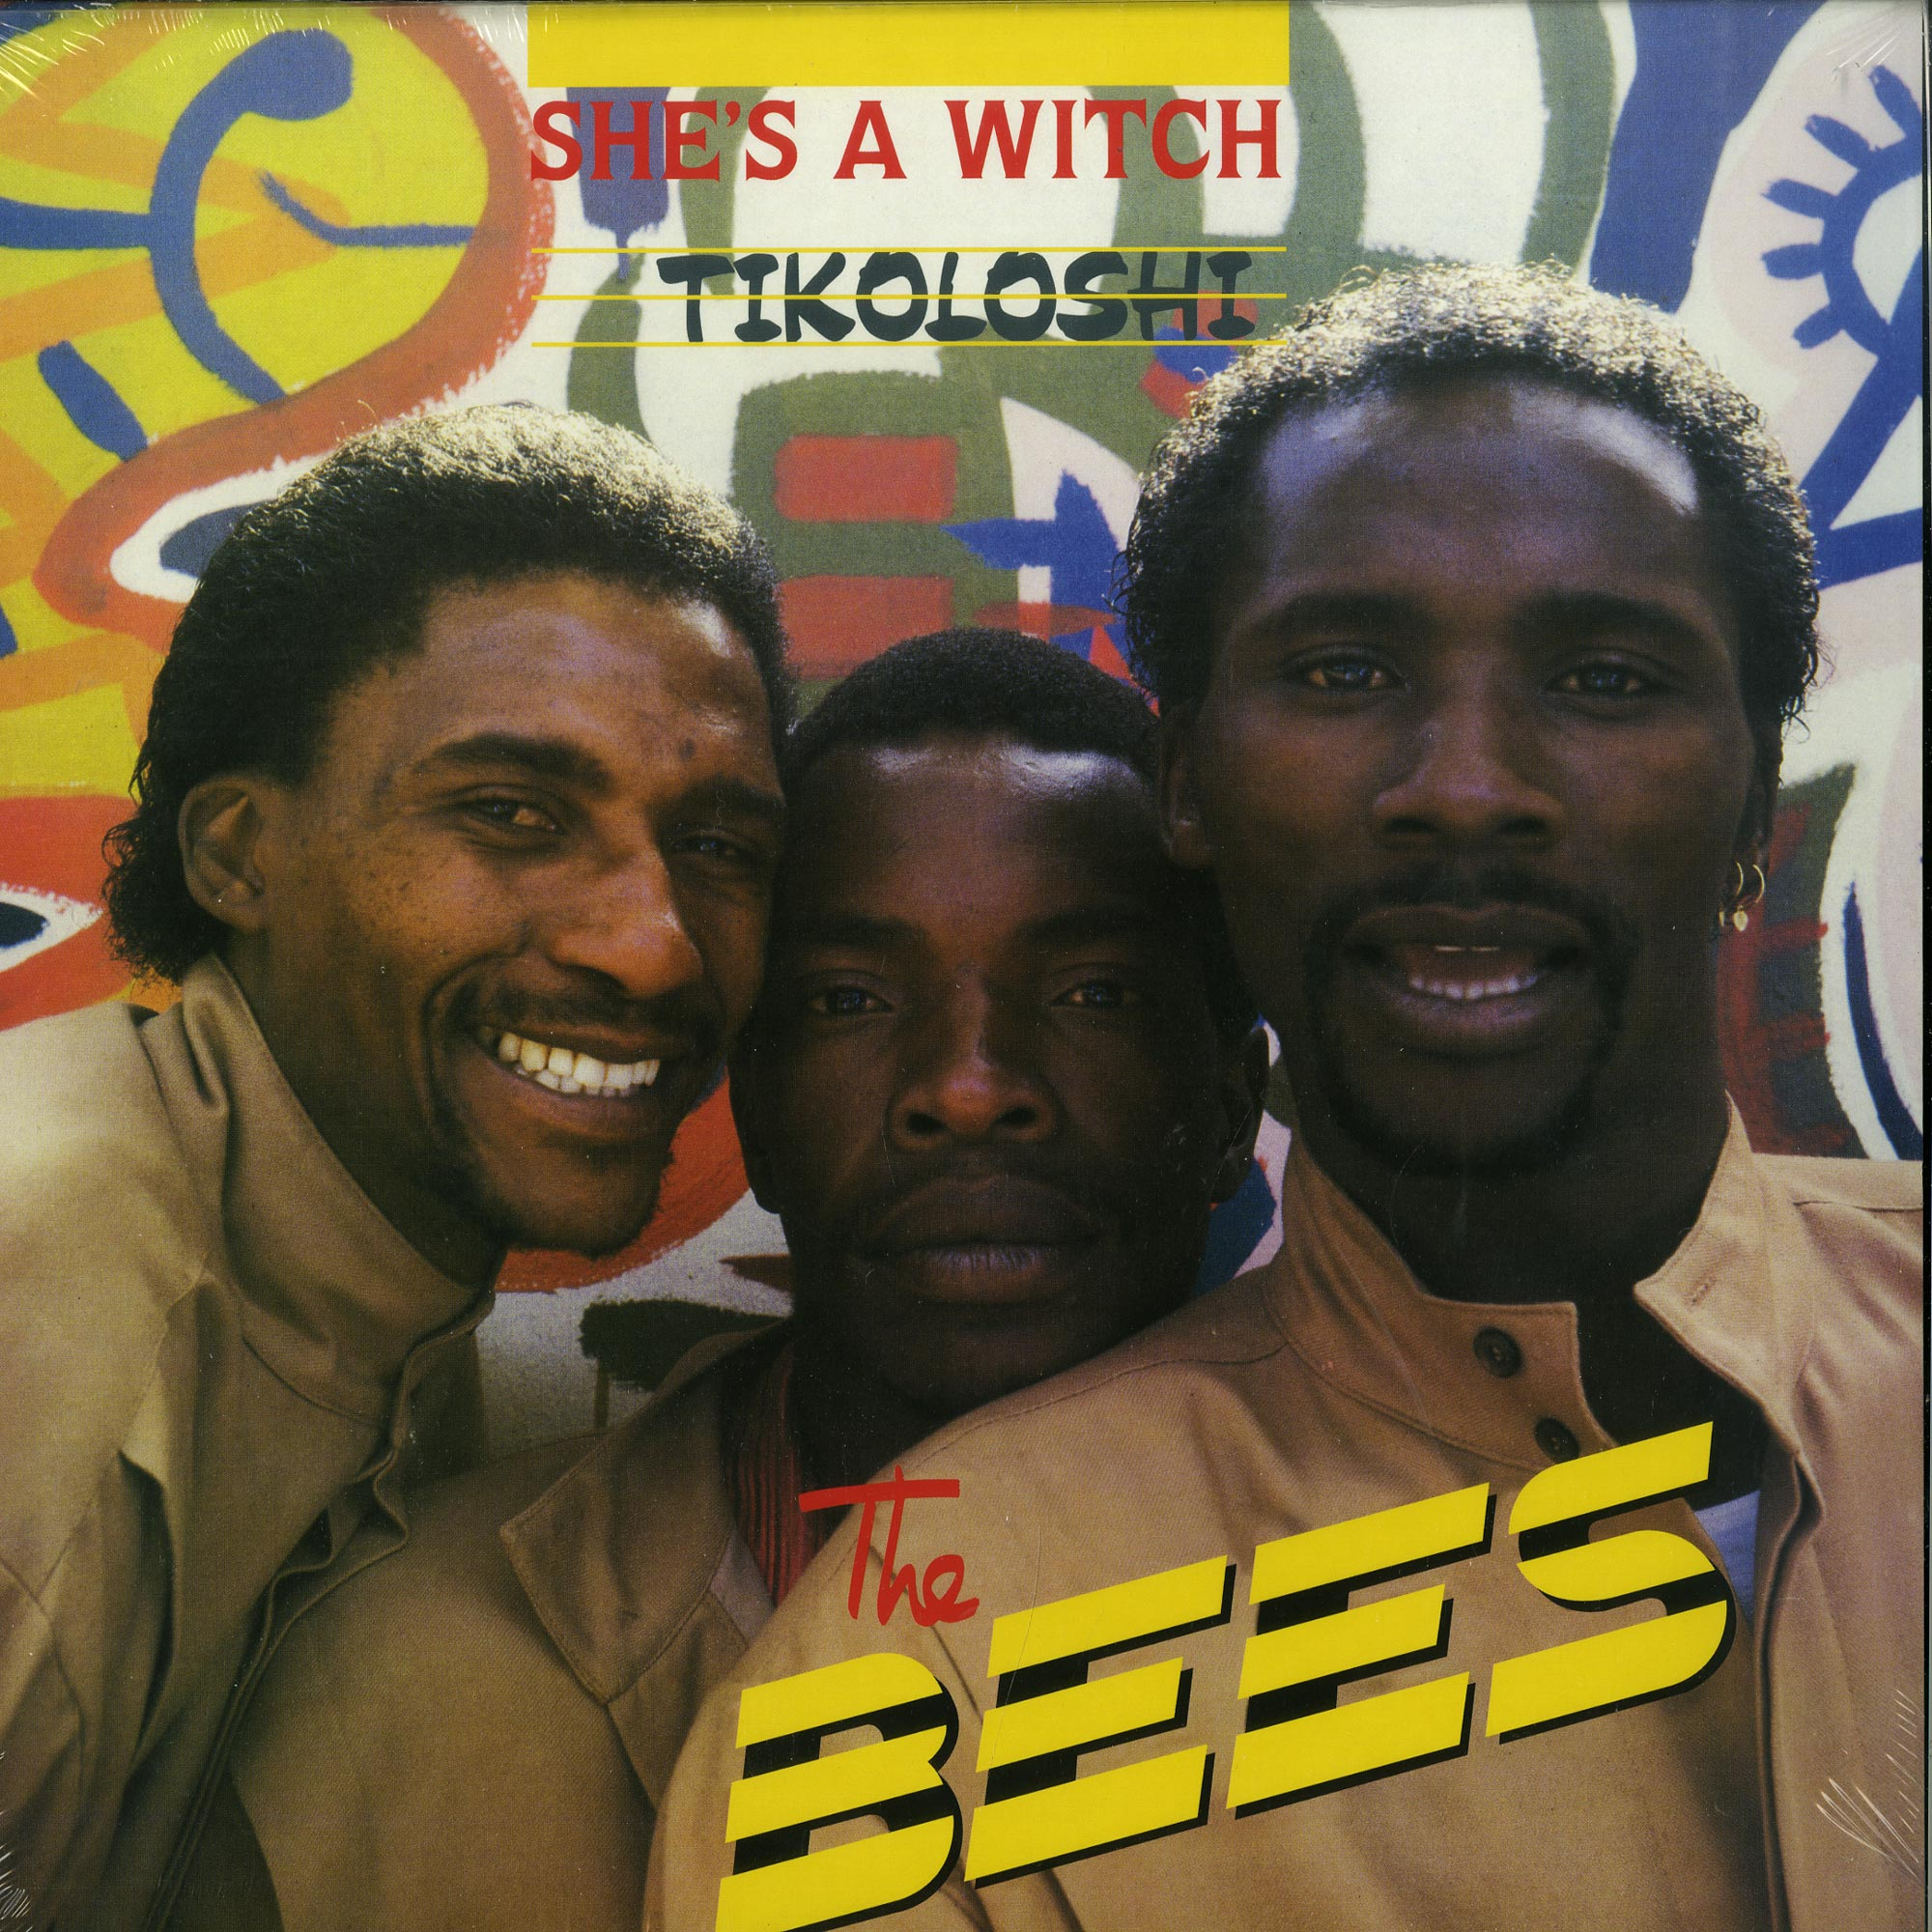 The Bees - SHES A WITCH - TIKOLOSHI